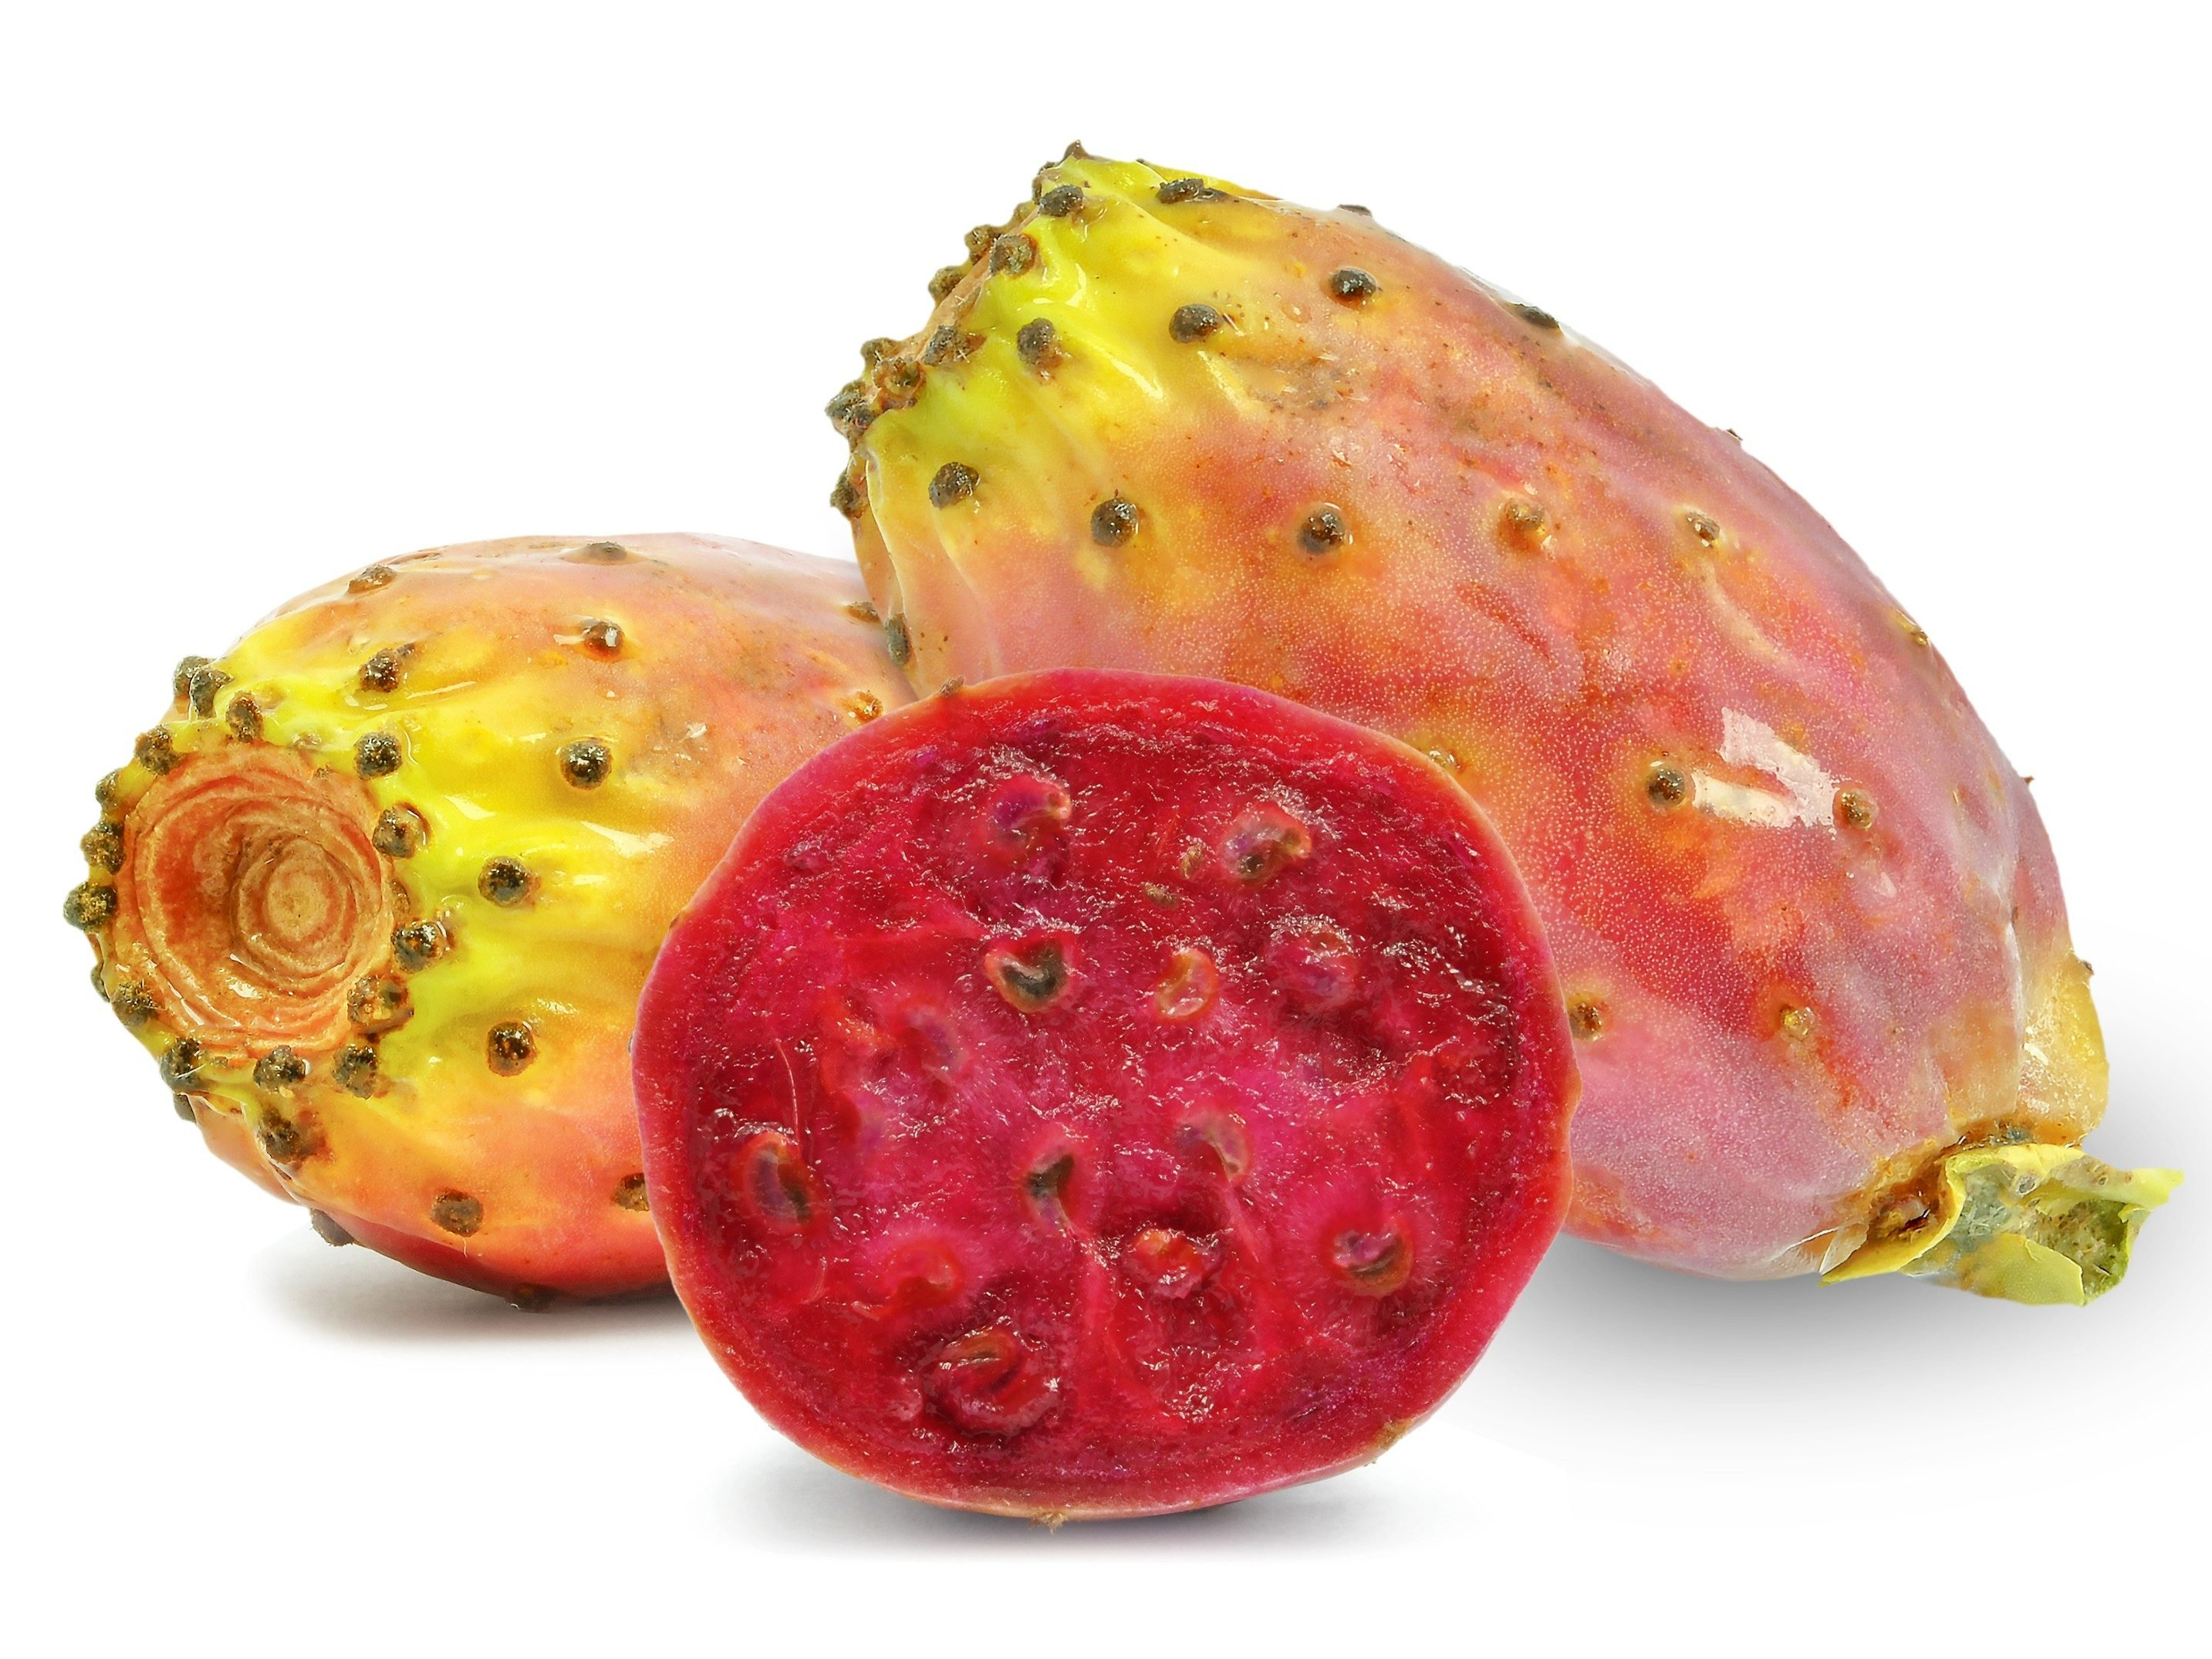 7. Take prickly pear before you go out